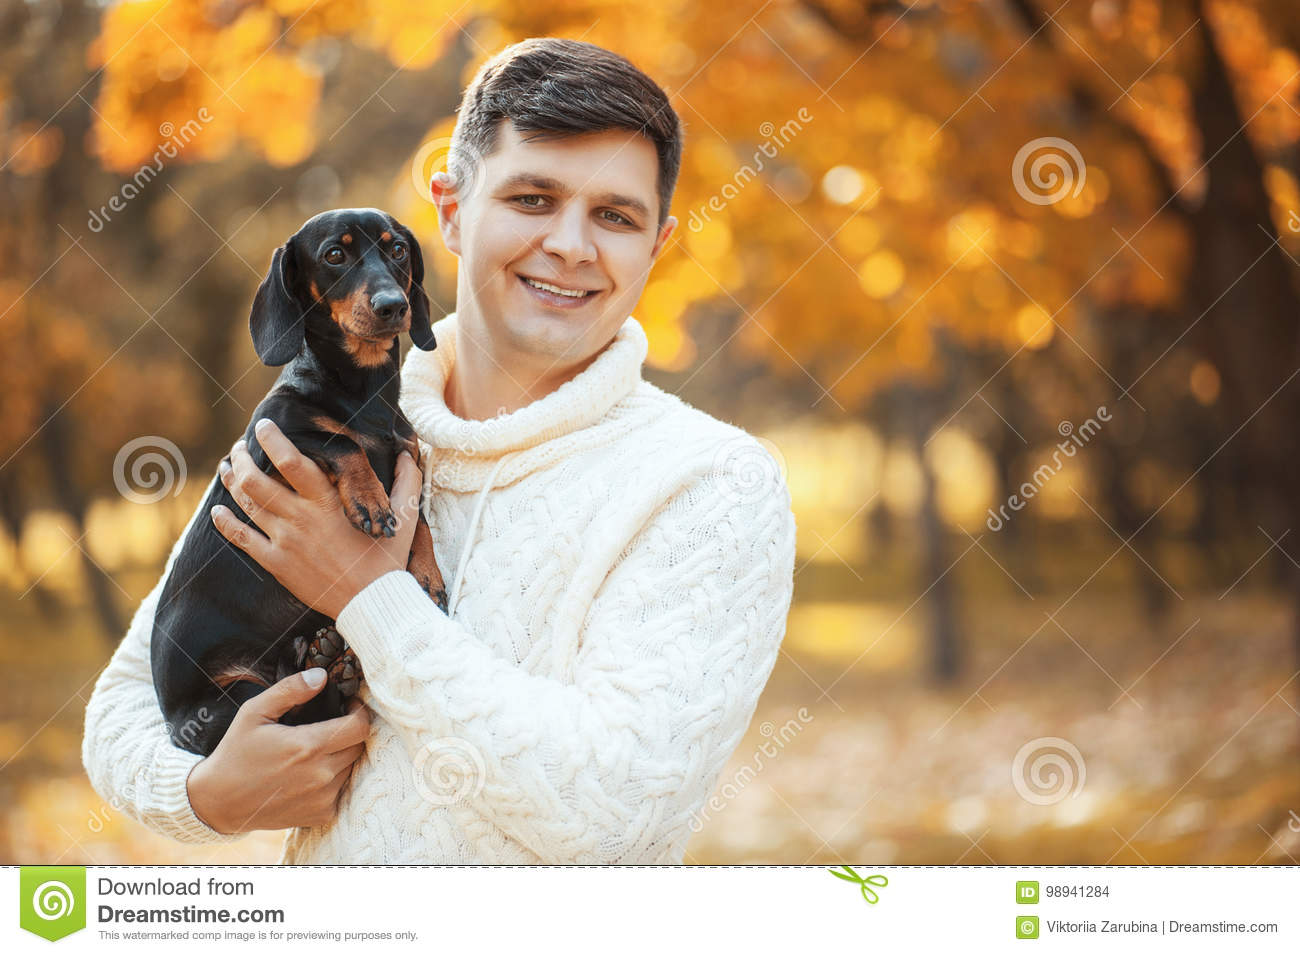 Happy free time with beloved dog! Handsome young man staying in autumn park smiling and holding cute puppy dachshund.